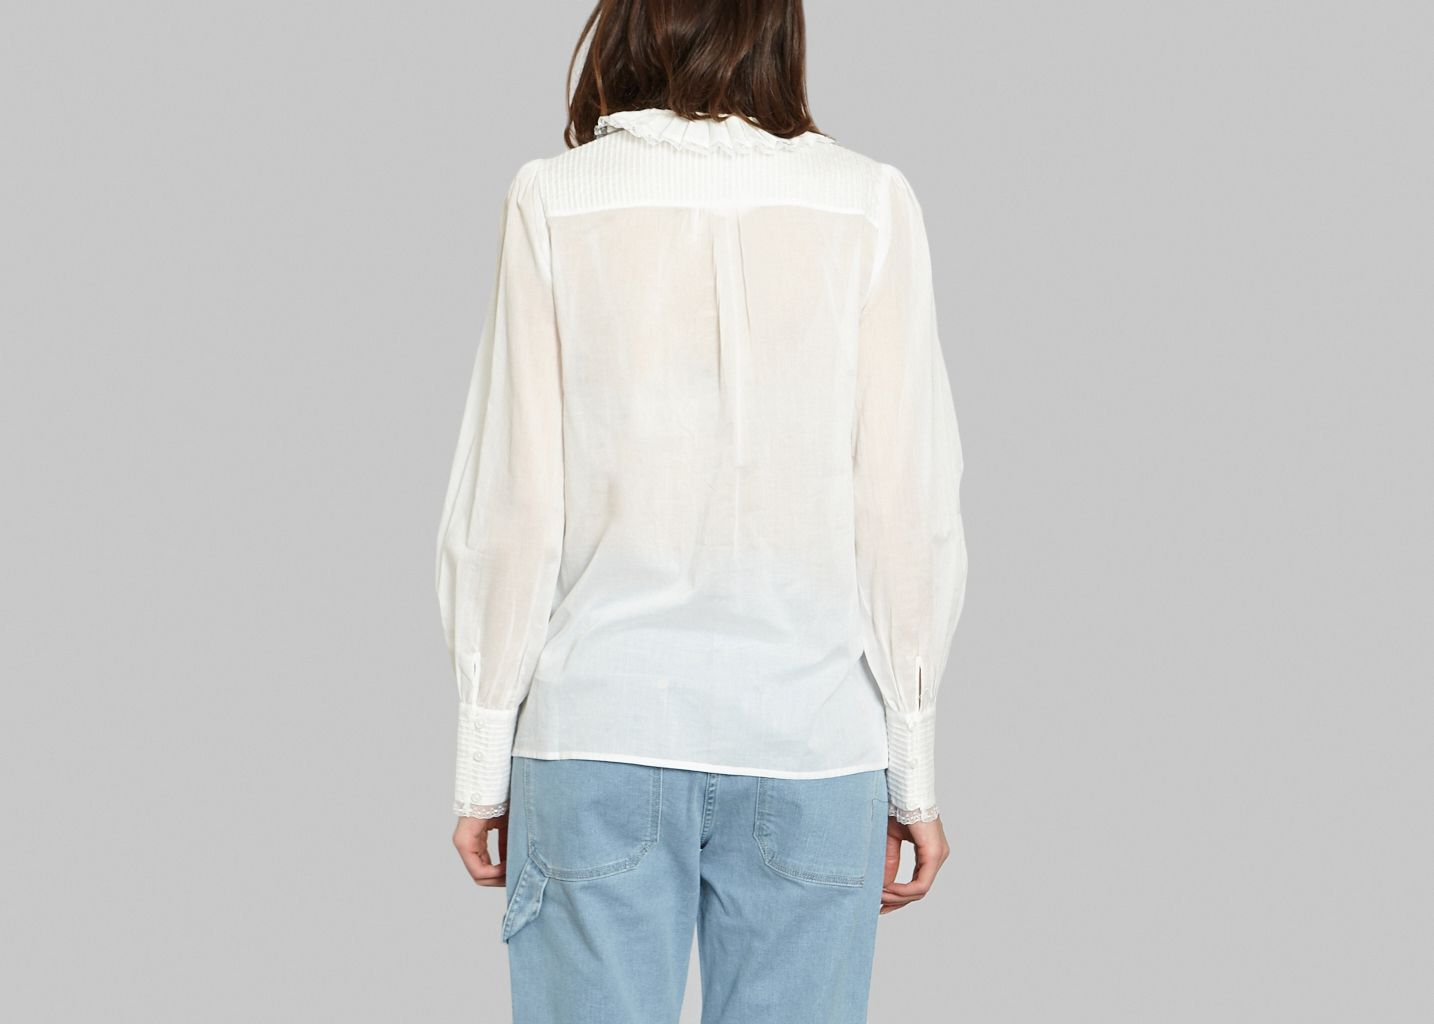 Voile Shirt - Sonia By